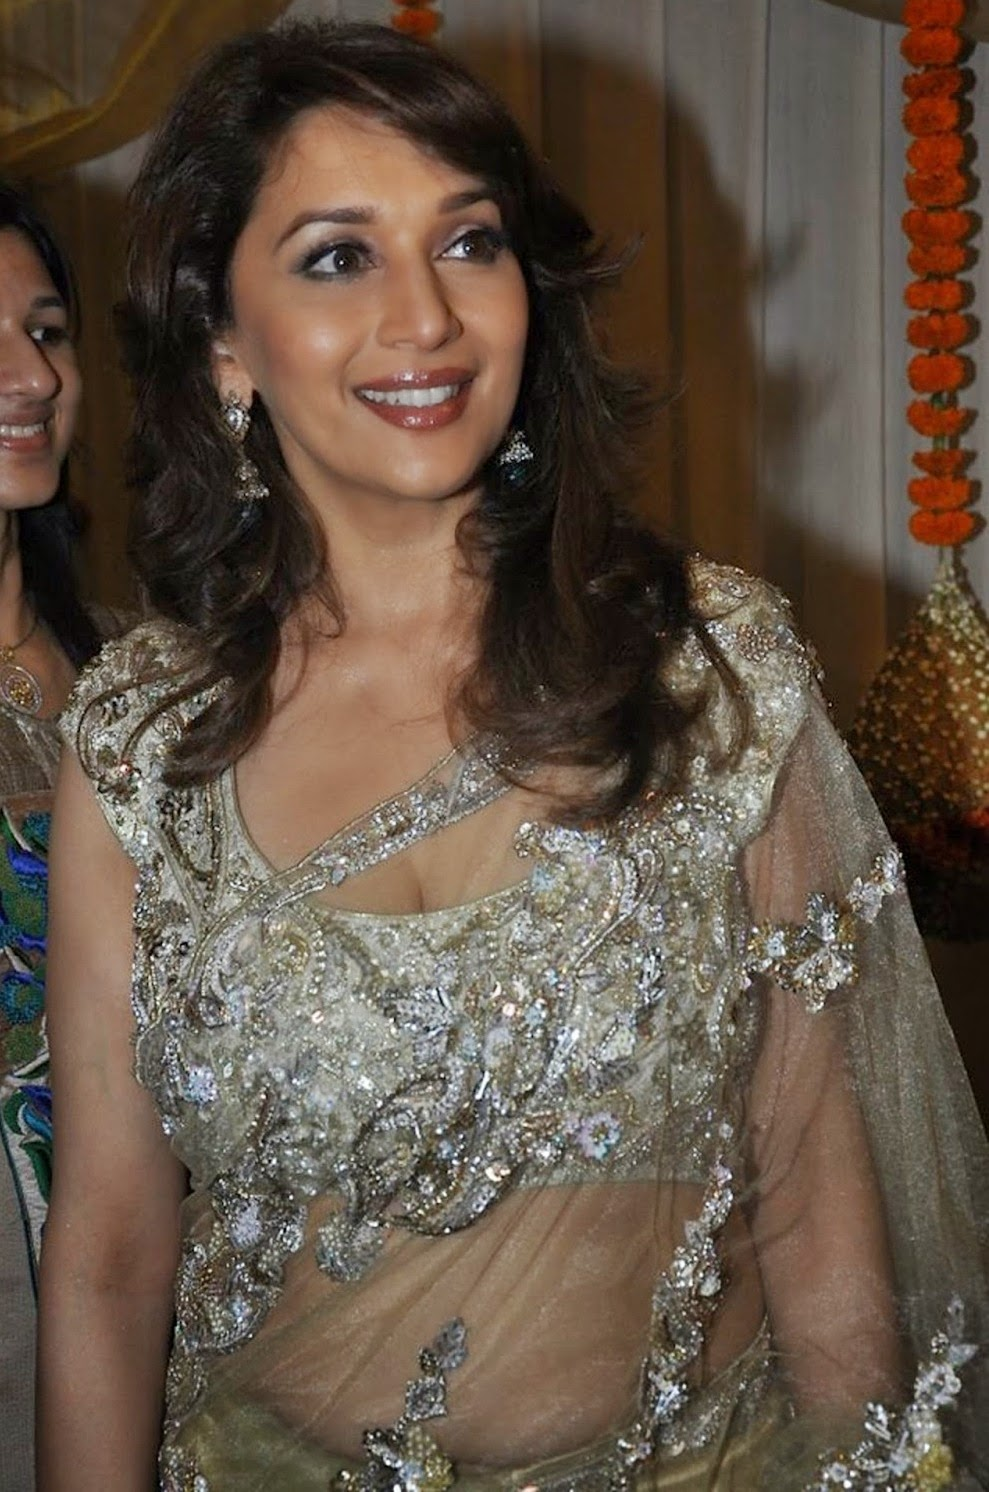 Xxx madhuri pic not right